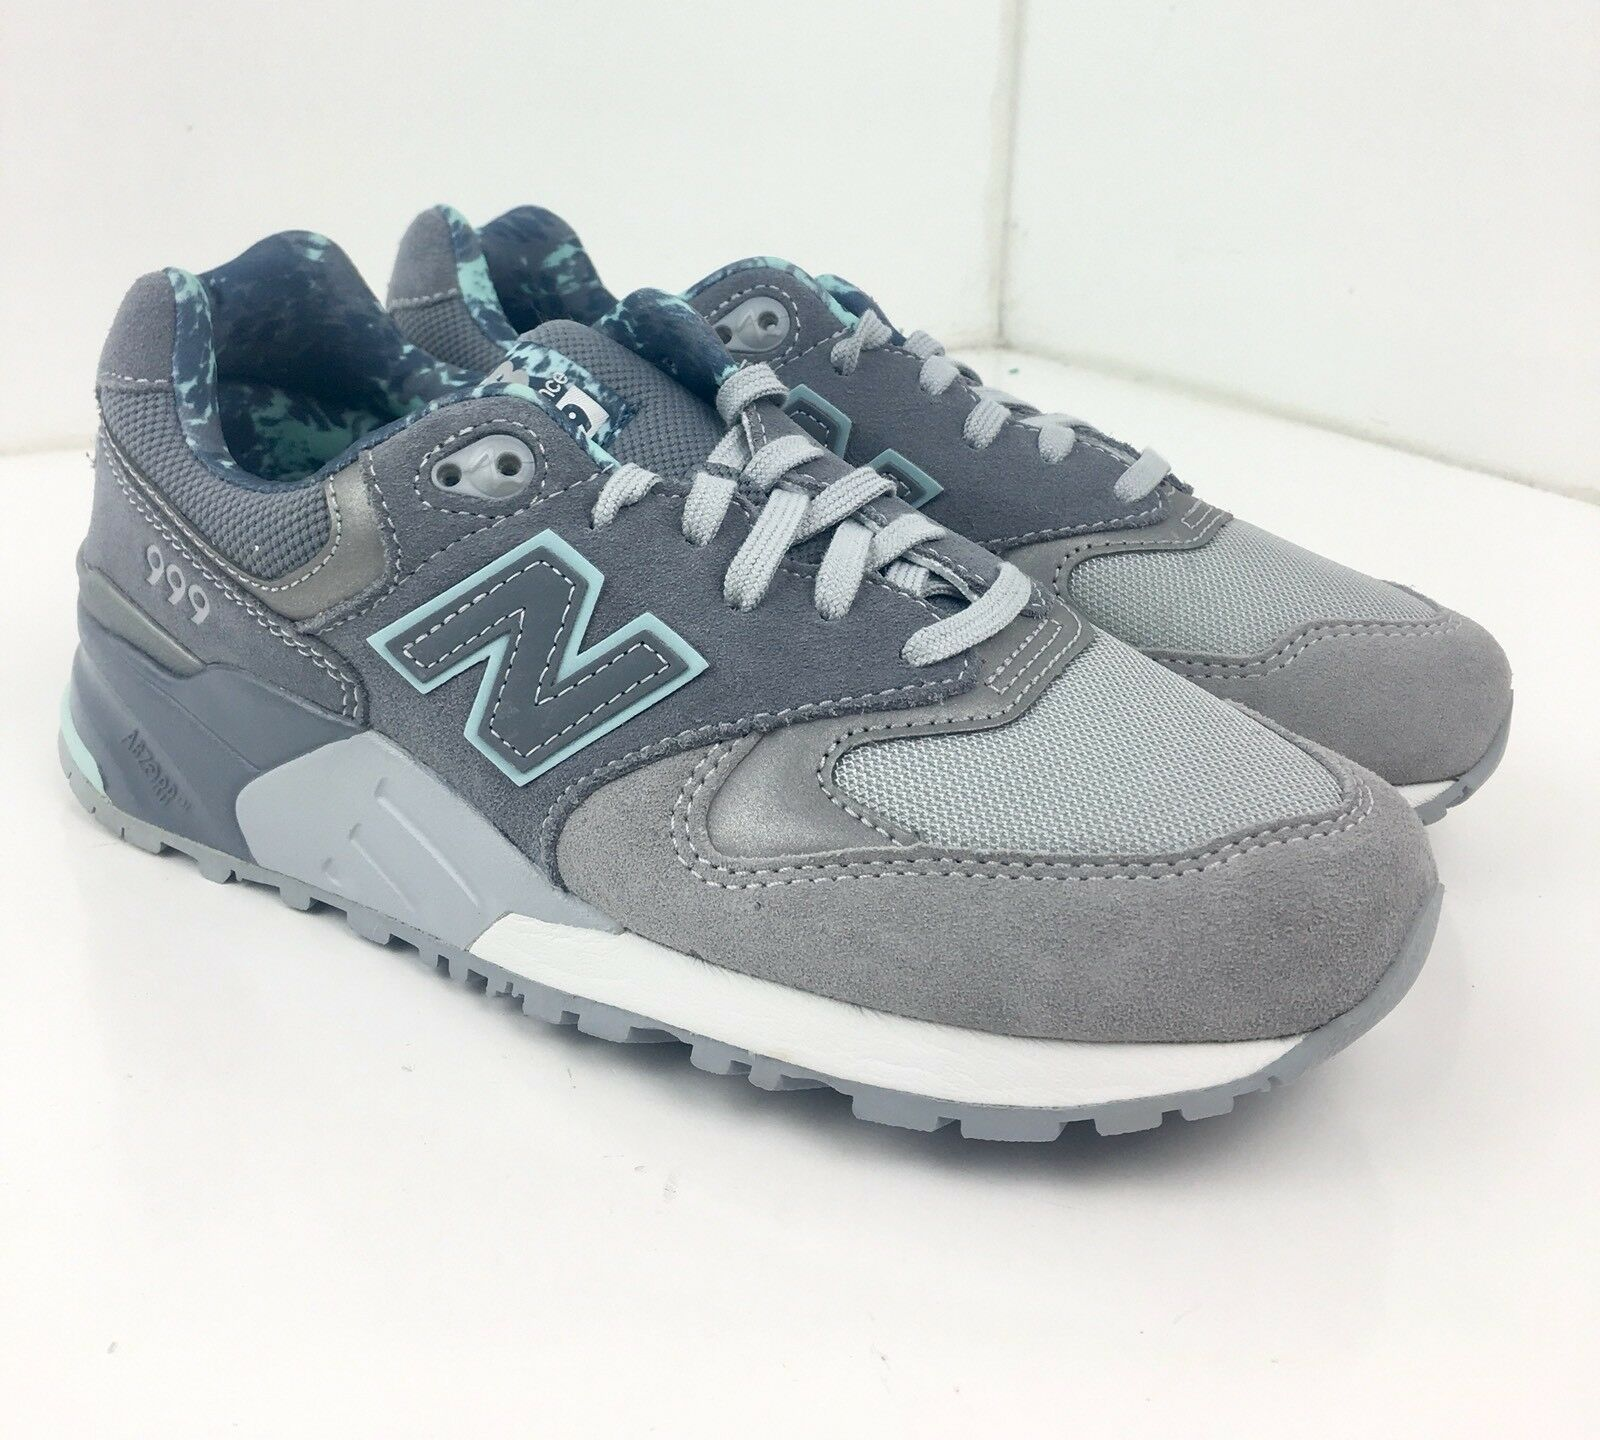 New Balance 999 Damens 7.5 Blau Lace & Gray Lace Blau Up Suede Running Schuhes WL999TB A111 425afe